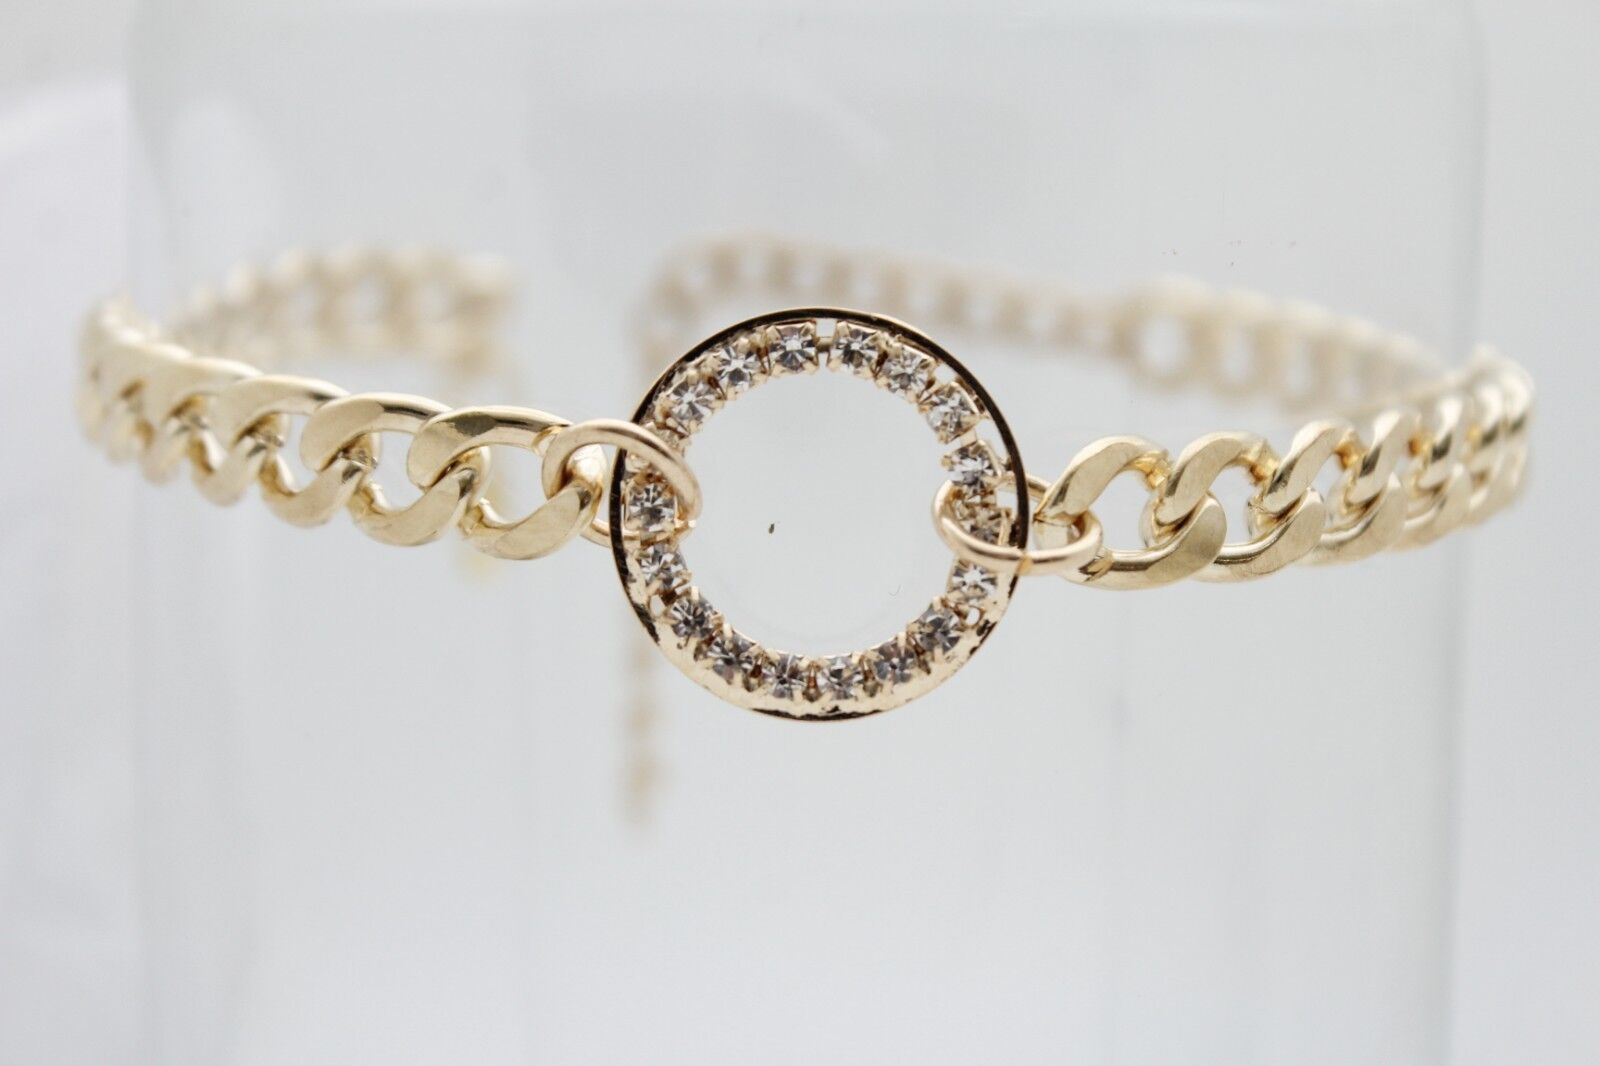 Classy Women Gold Metal Chain Boot Bracelet Anklet Shoe Bling Ring Charm Jewelry